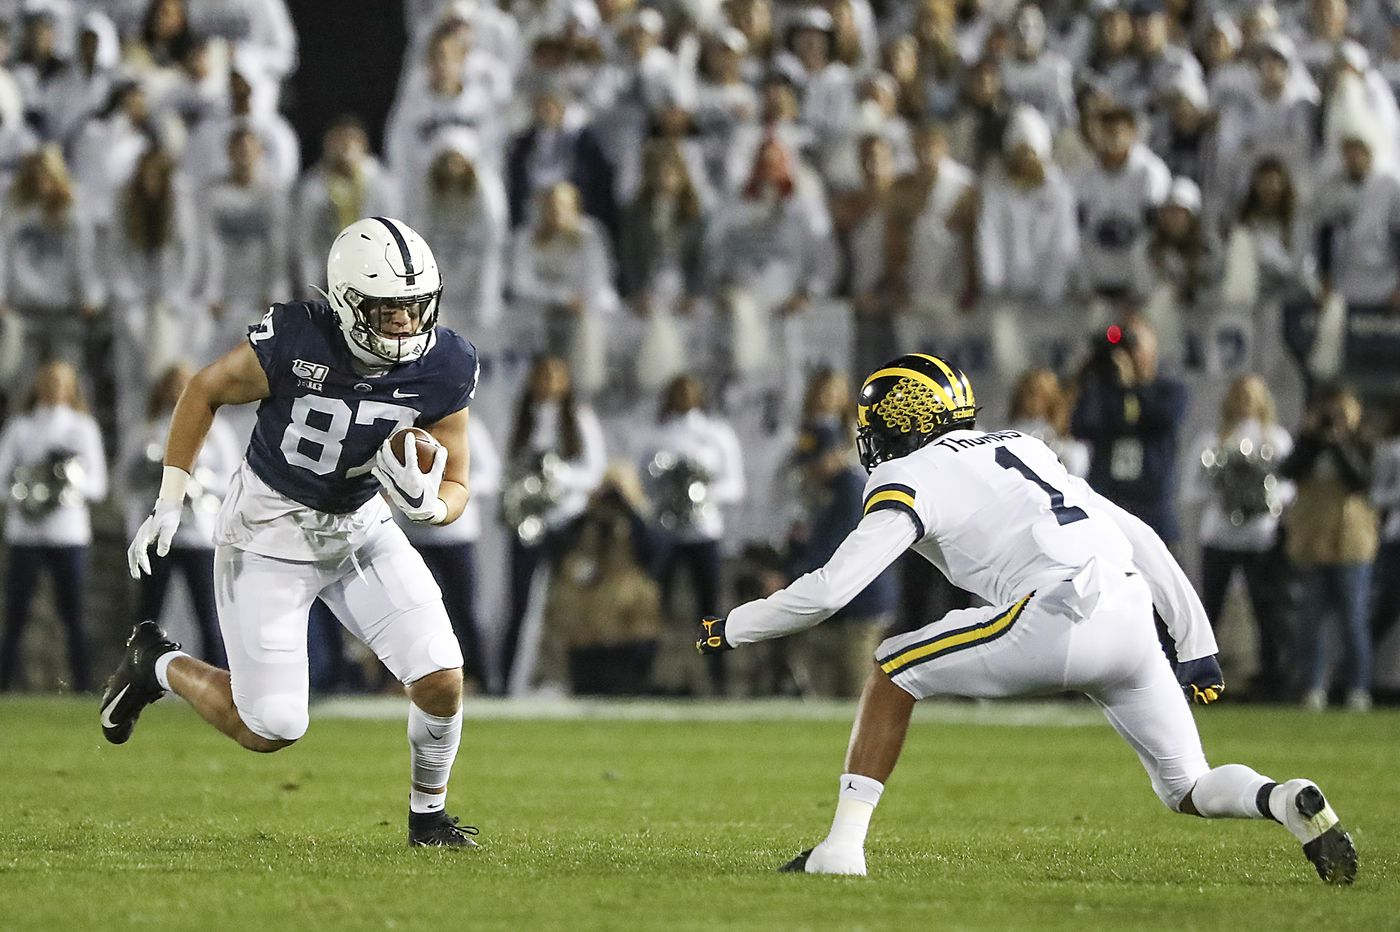 Penn State tight end Pat Freiermuth says he will remain with Nittany Lions for 2020 season